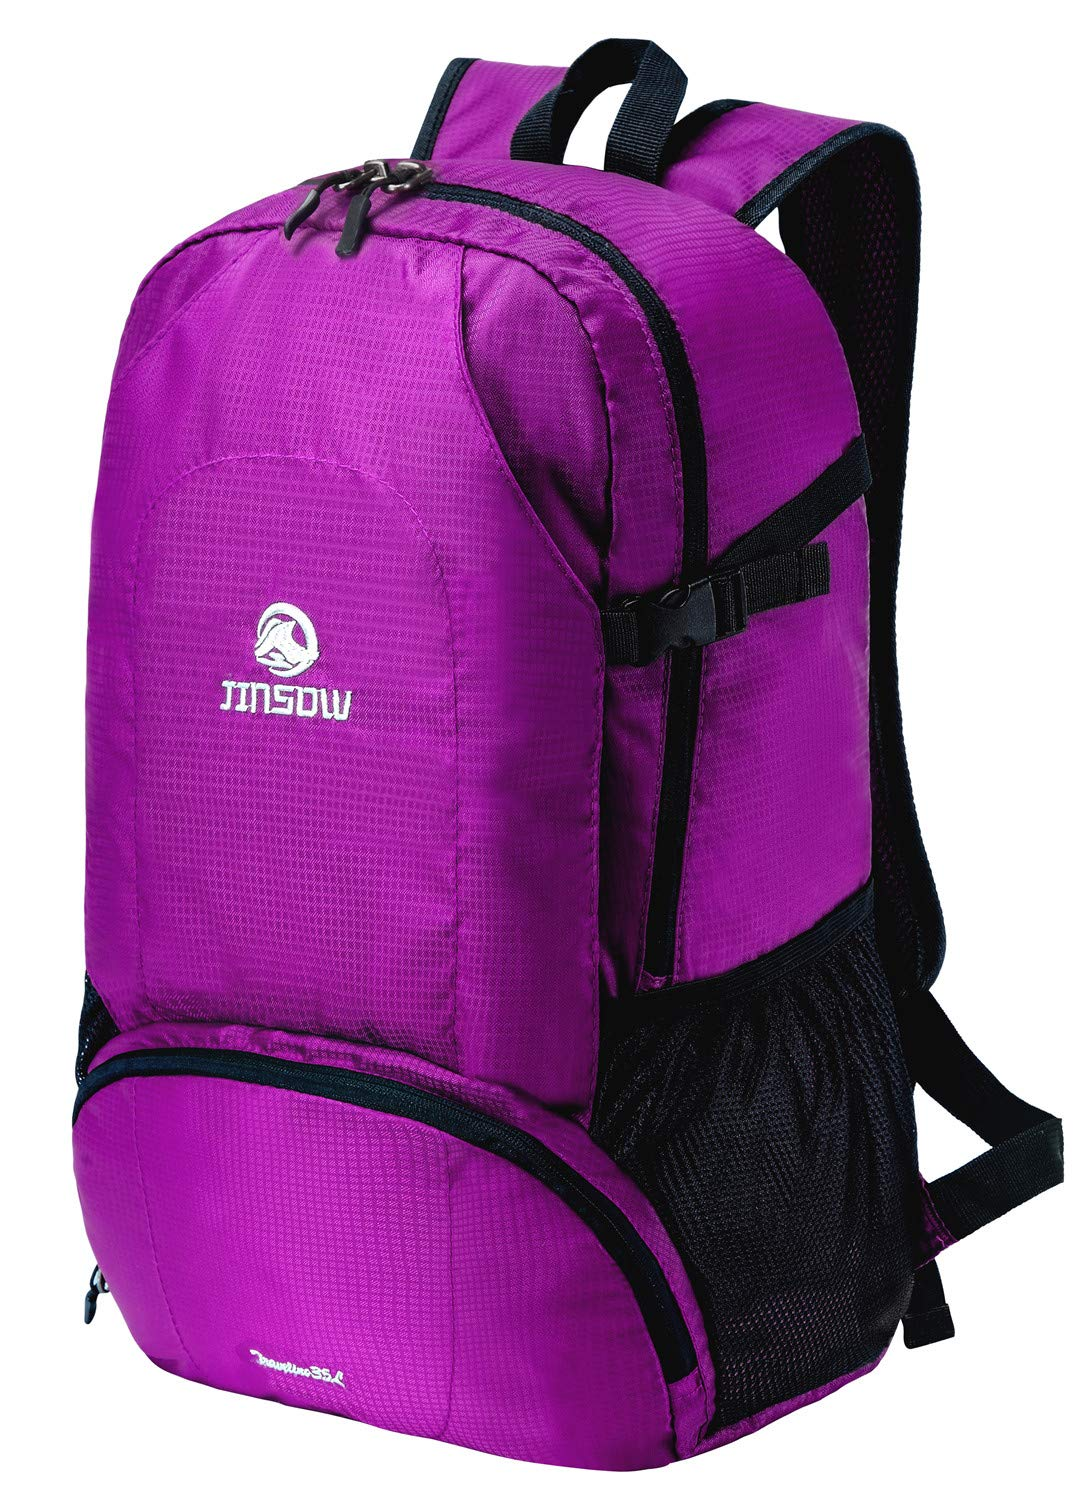 JINSOW 35L Lightweight Packable Hiking Backpack Daypack, Water Resistant Foldable Large Bags Travel Camping Outdoor Backpacks for Women Men Boys Girls Purple by JINSOW (Image #2)